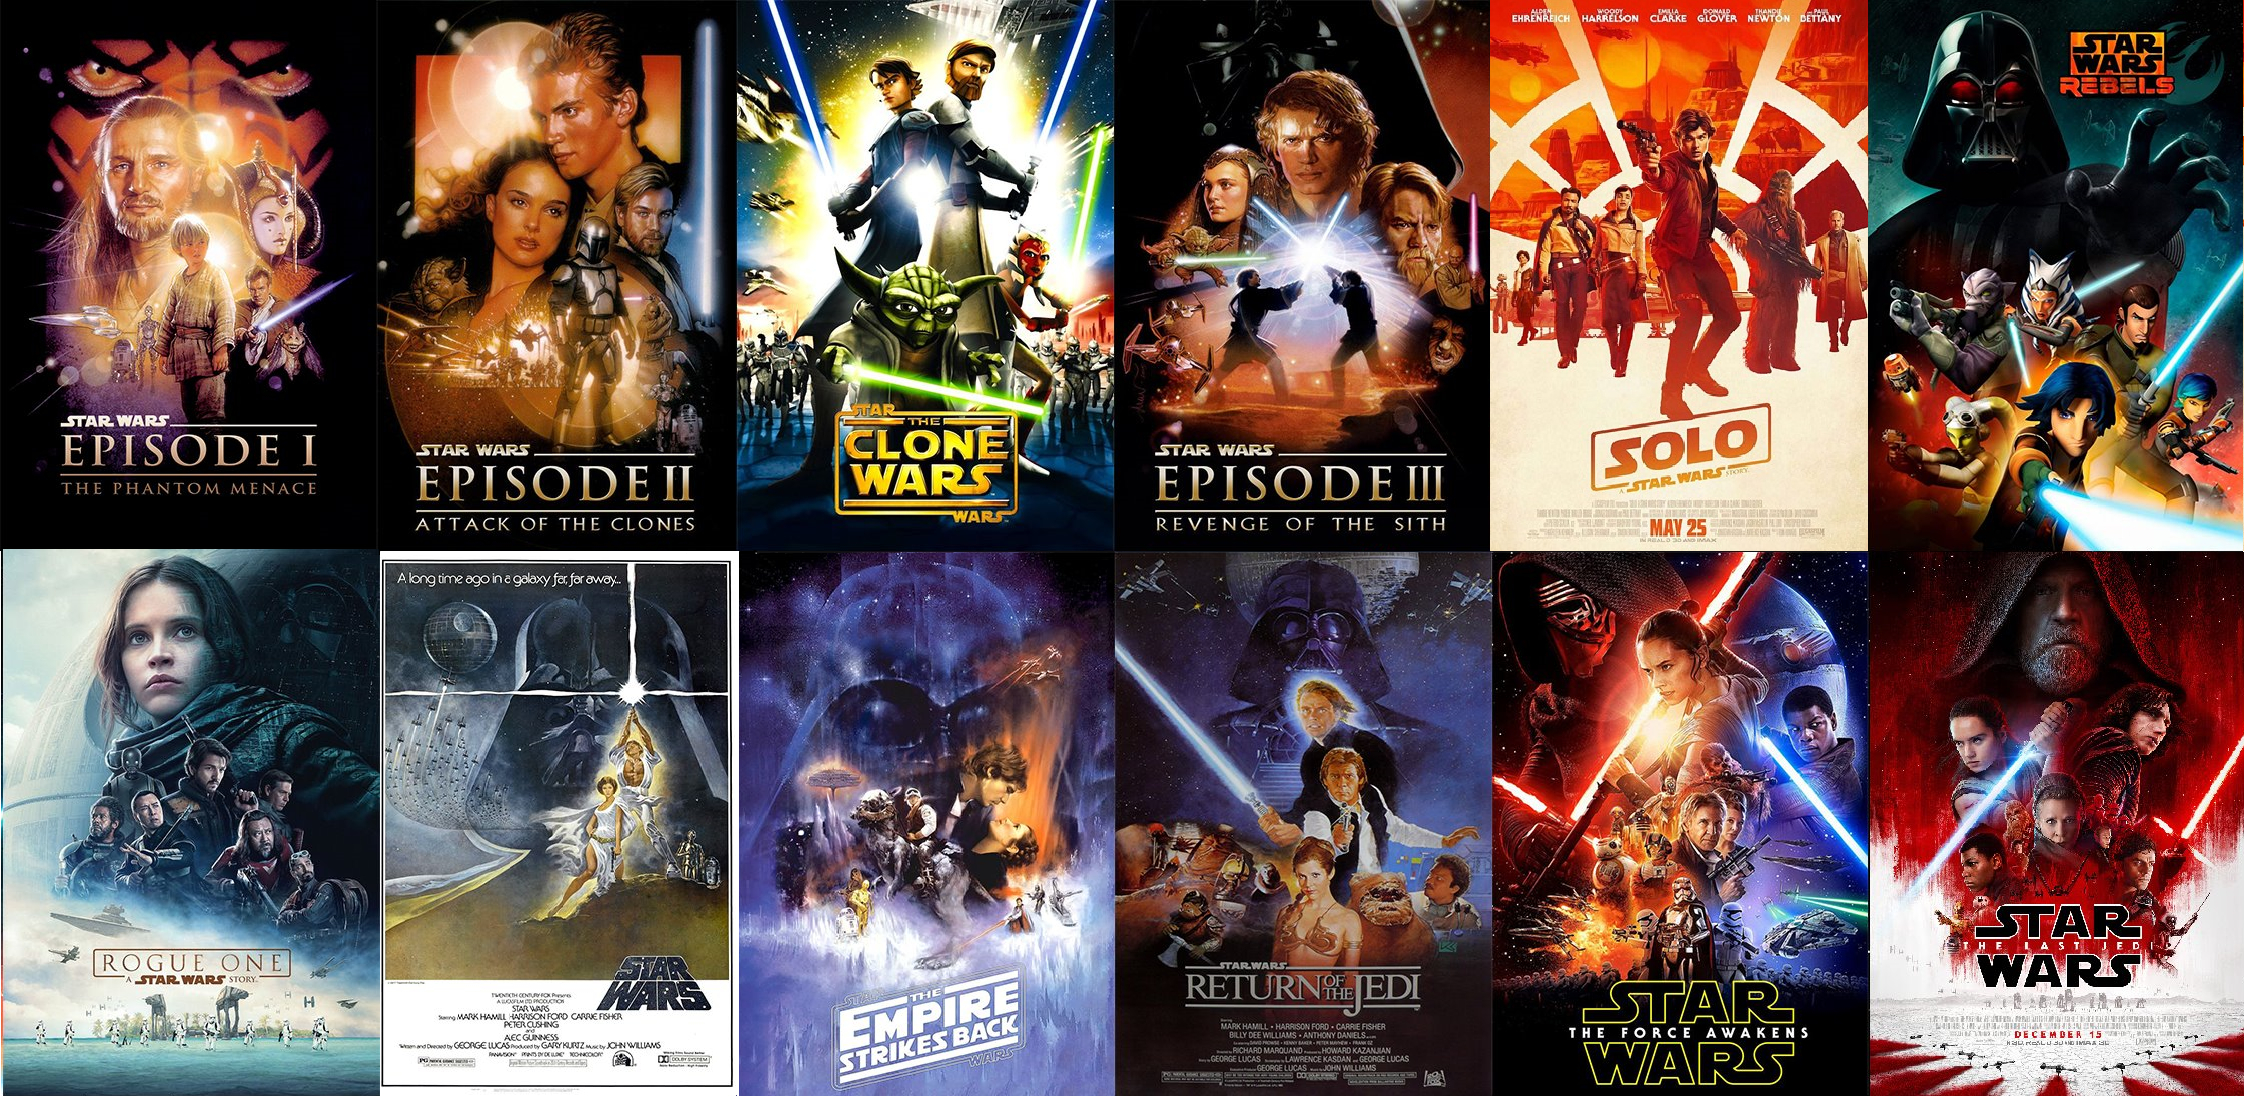 star wars posters wallpaper : starwars